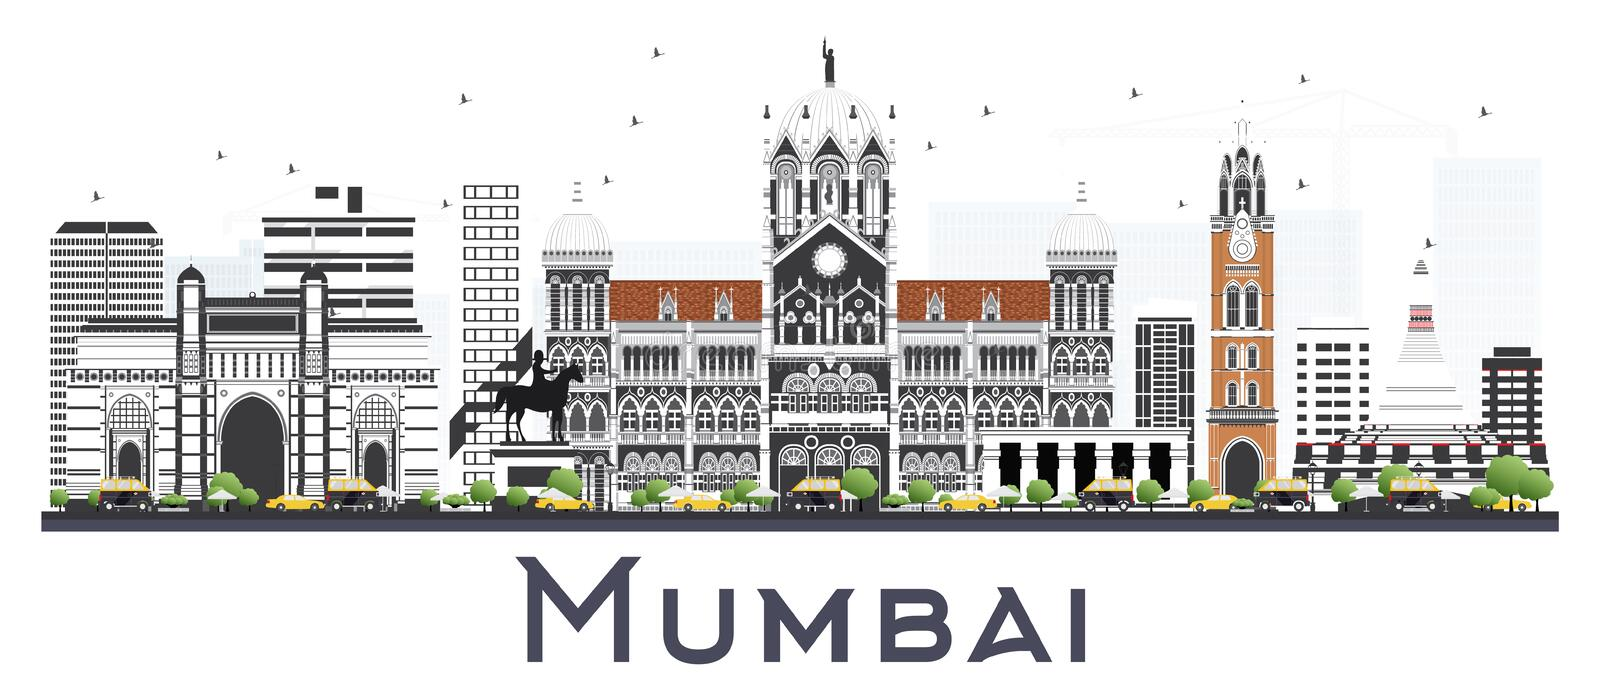 Mumbai India City Skyline with Color Buildings Isolated on White. Vector Illustration. Business Travel and Tourism Concept with Historic Architecture. Mumbai stock illustration